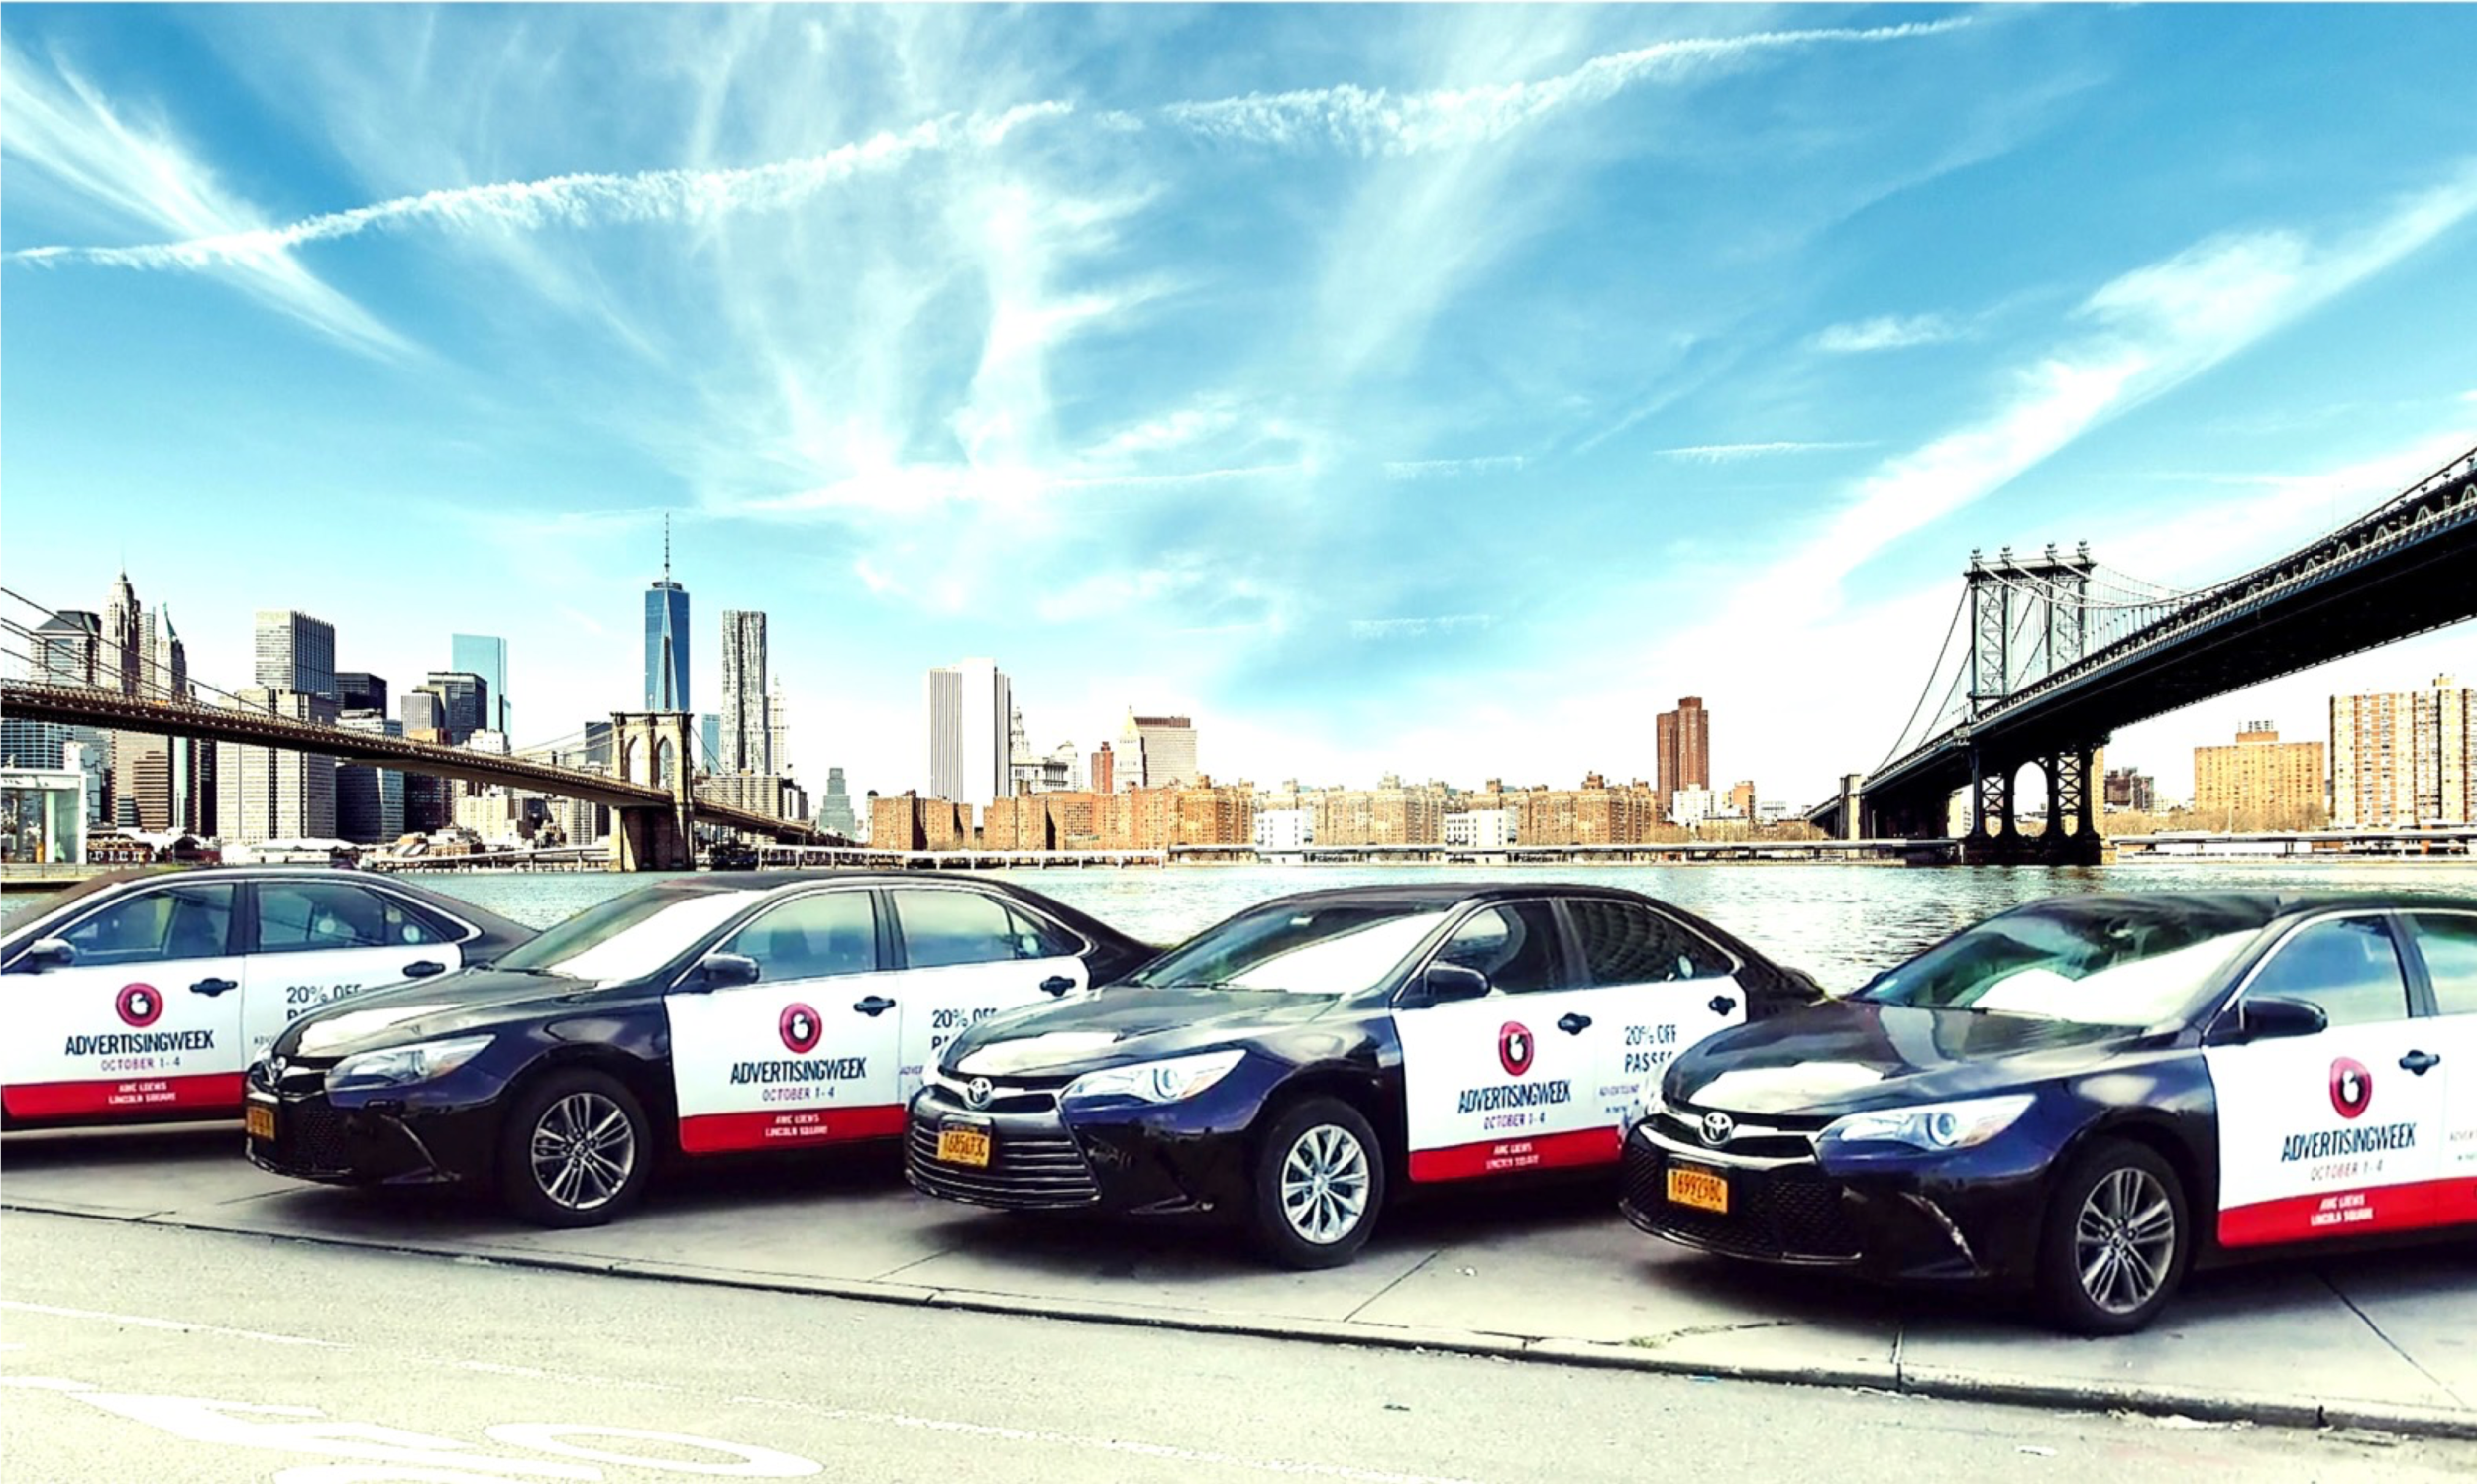 - WE'RE PROUD TO PARTNER WITH ADVERTISING WEEK TO PROVIDE RIDESHARE DRIVERS A CHANCE TO EARN MONEY IN HOBOKEN, NJ!